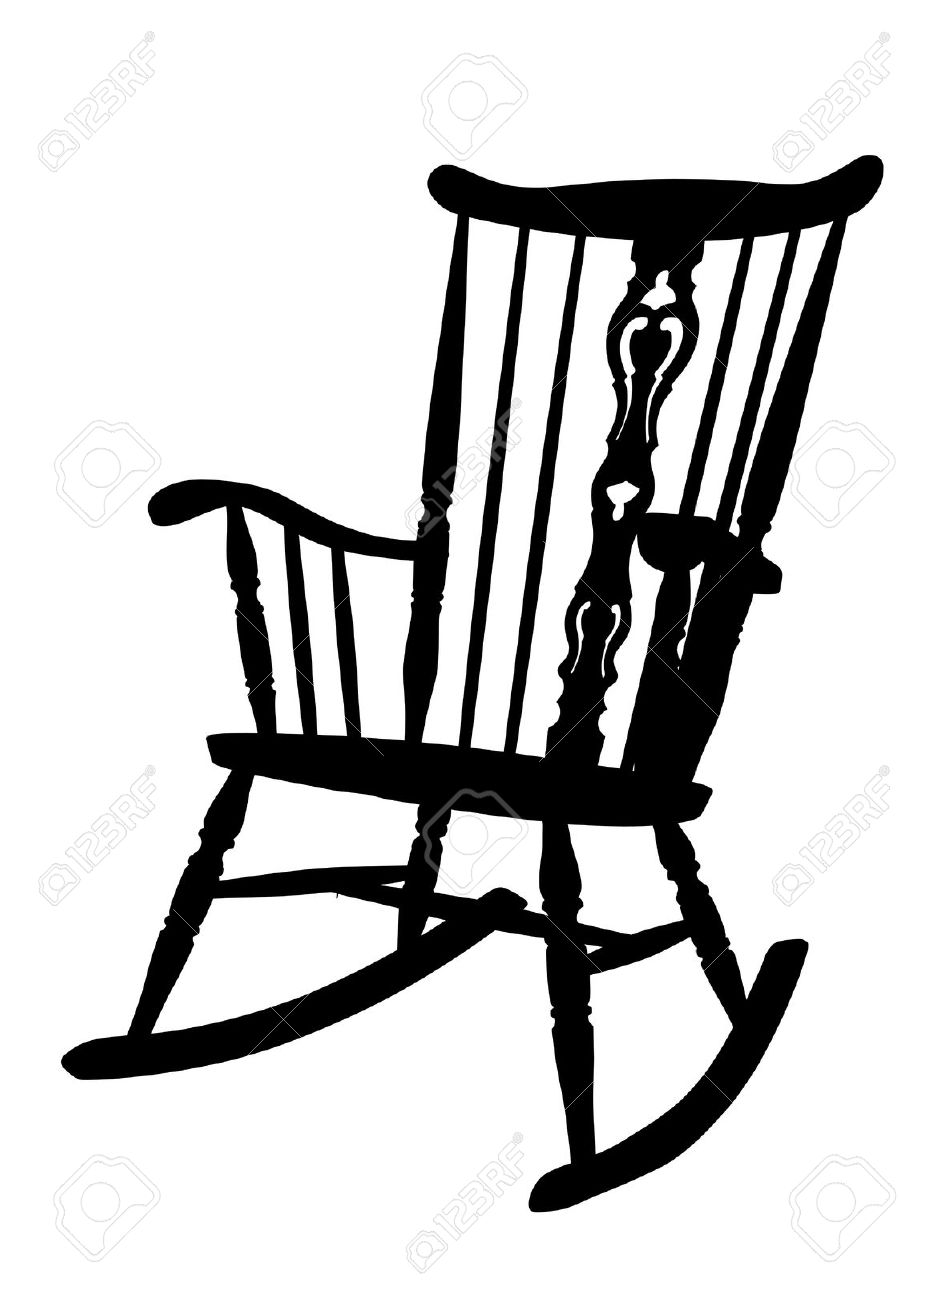 Chair Silhouette Vector at GetDrawings | Free download